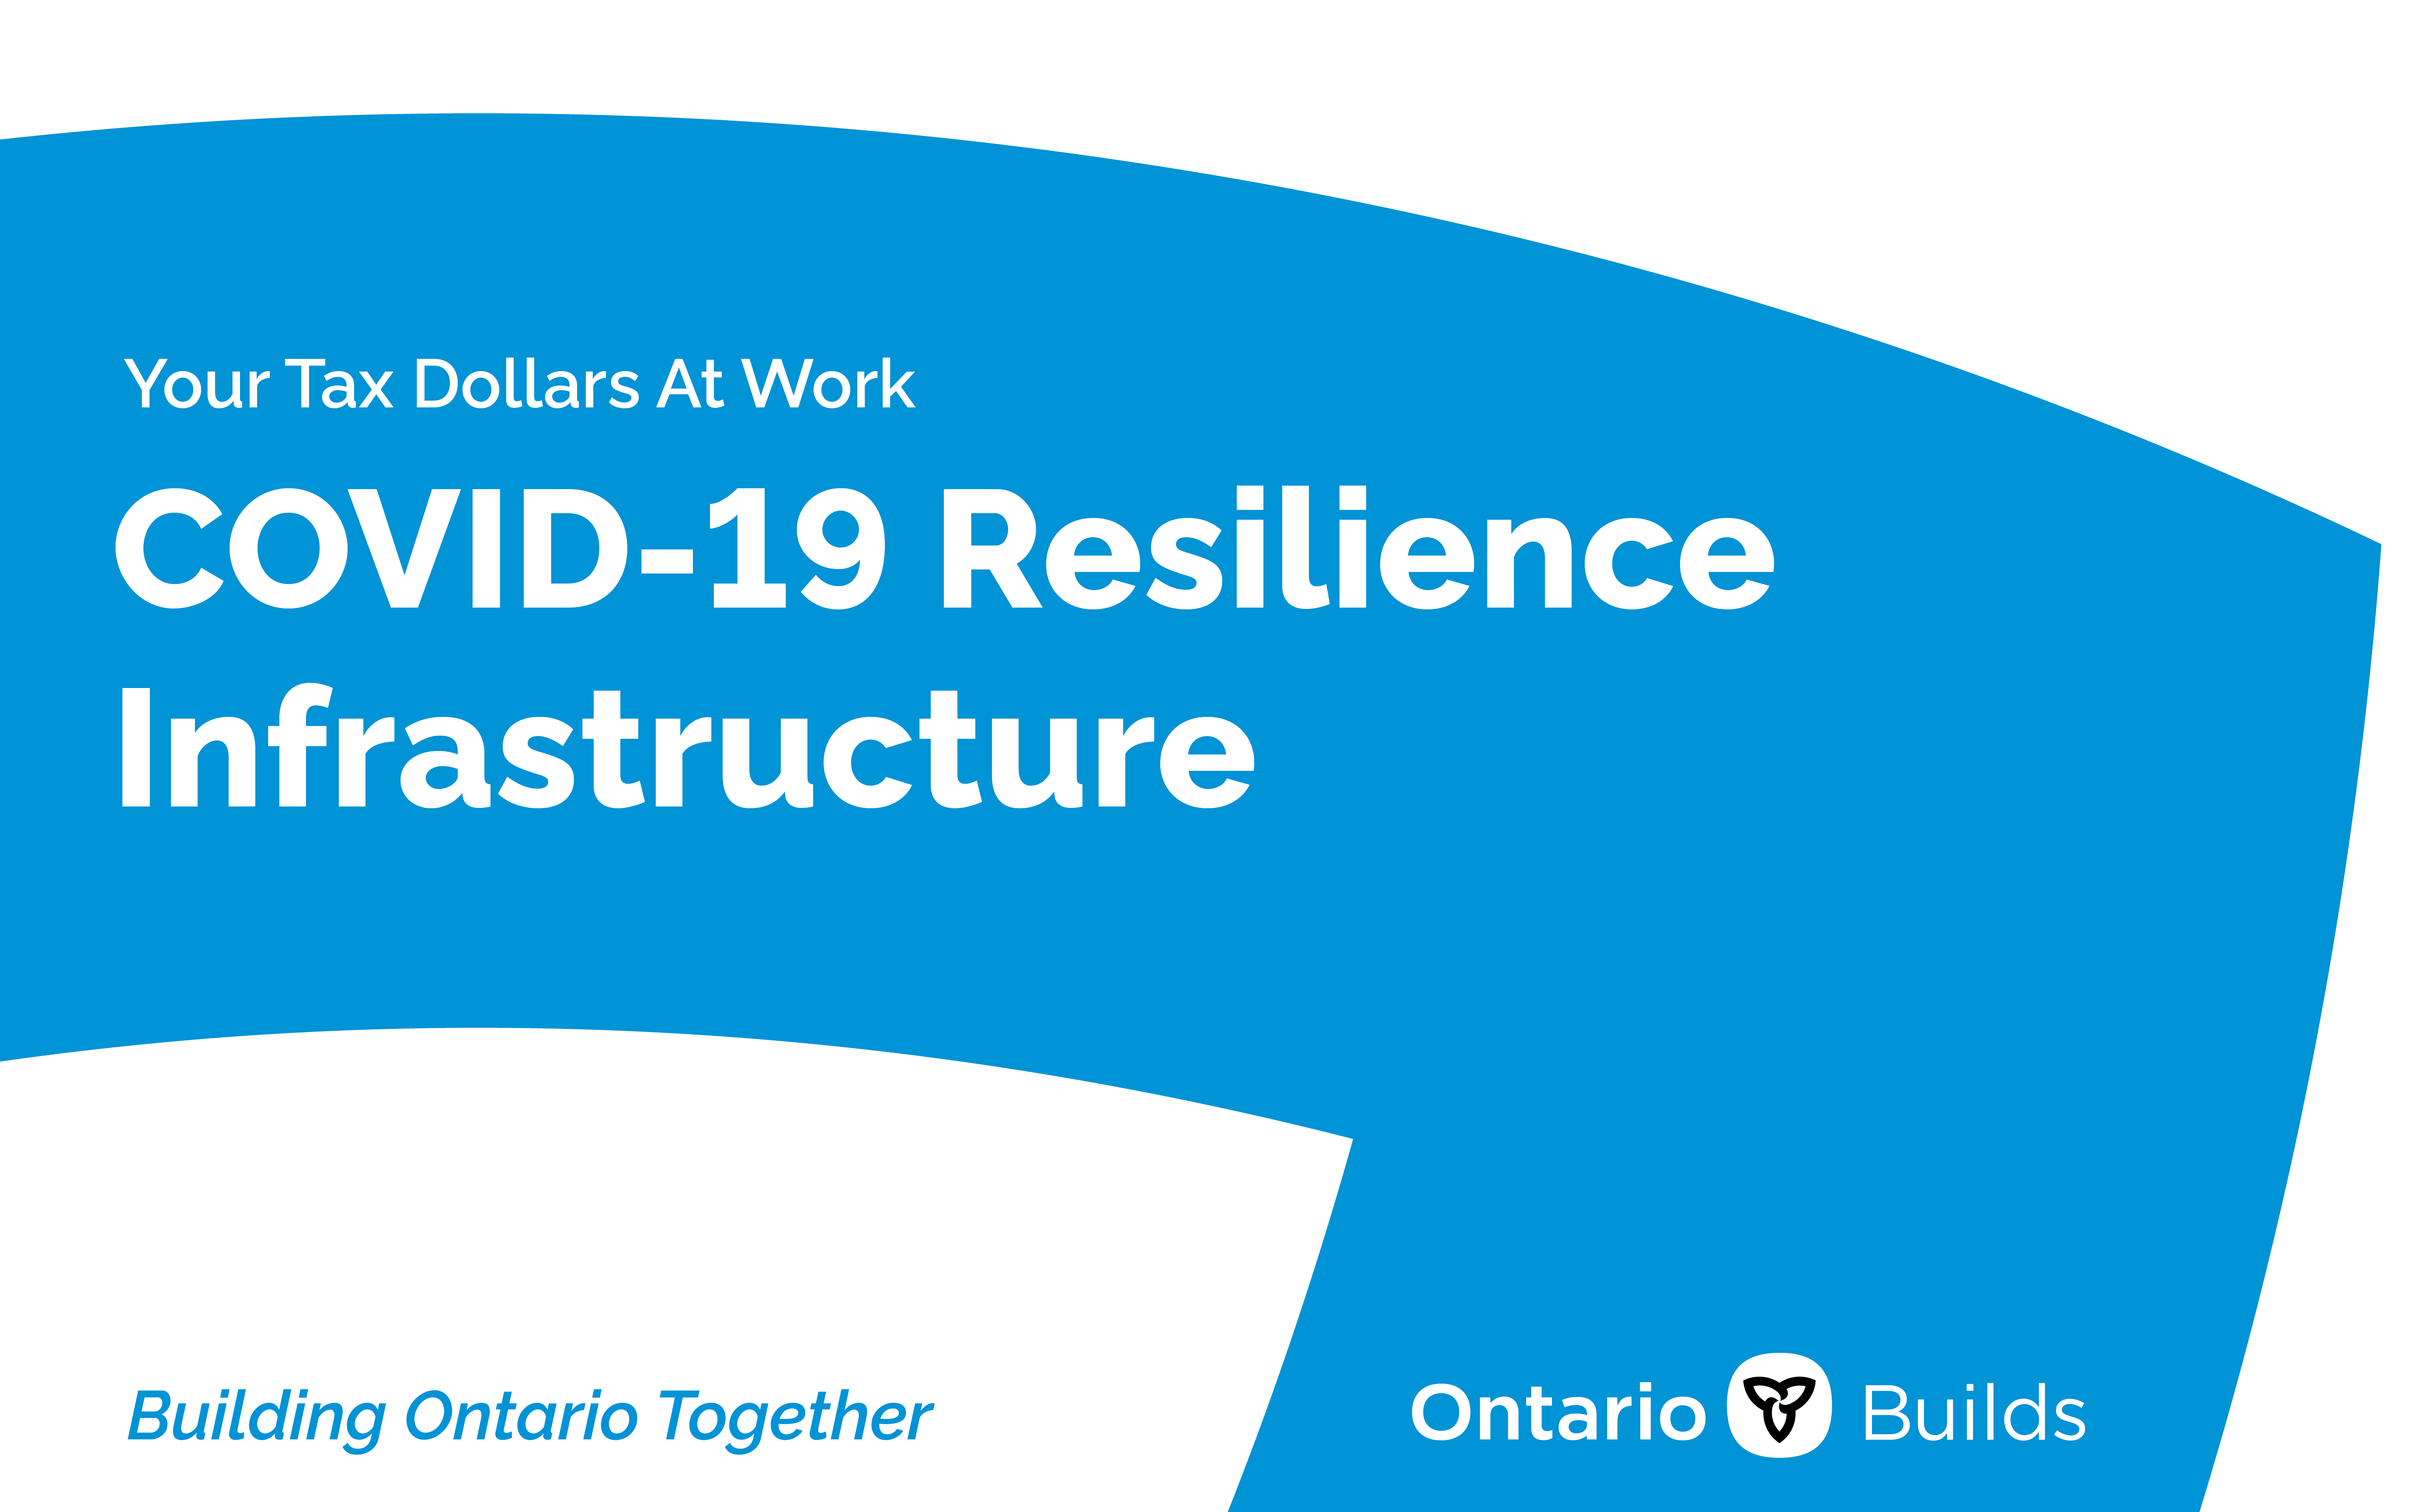 Your Tax Dollars at Work. COVID-19 Resilience Infrastructure